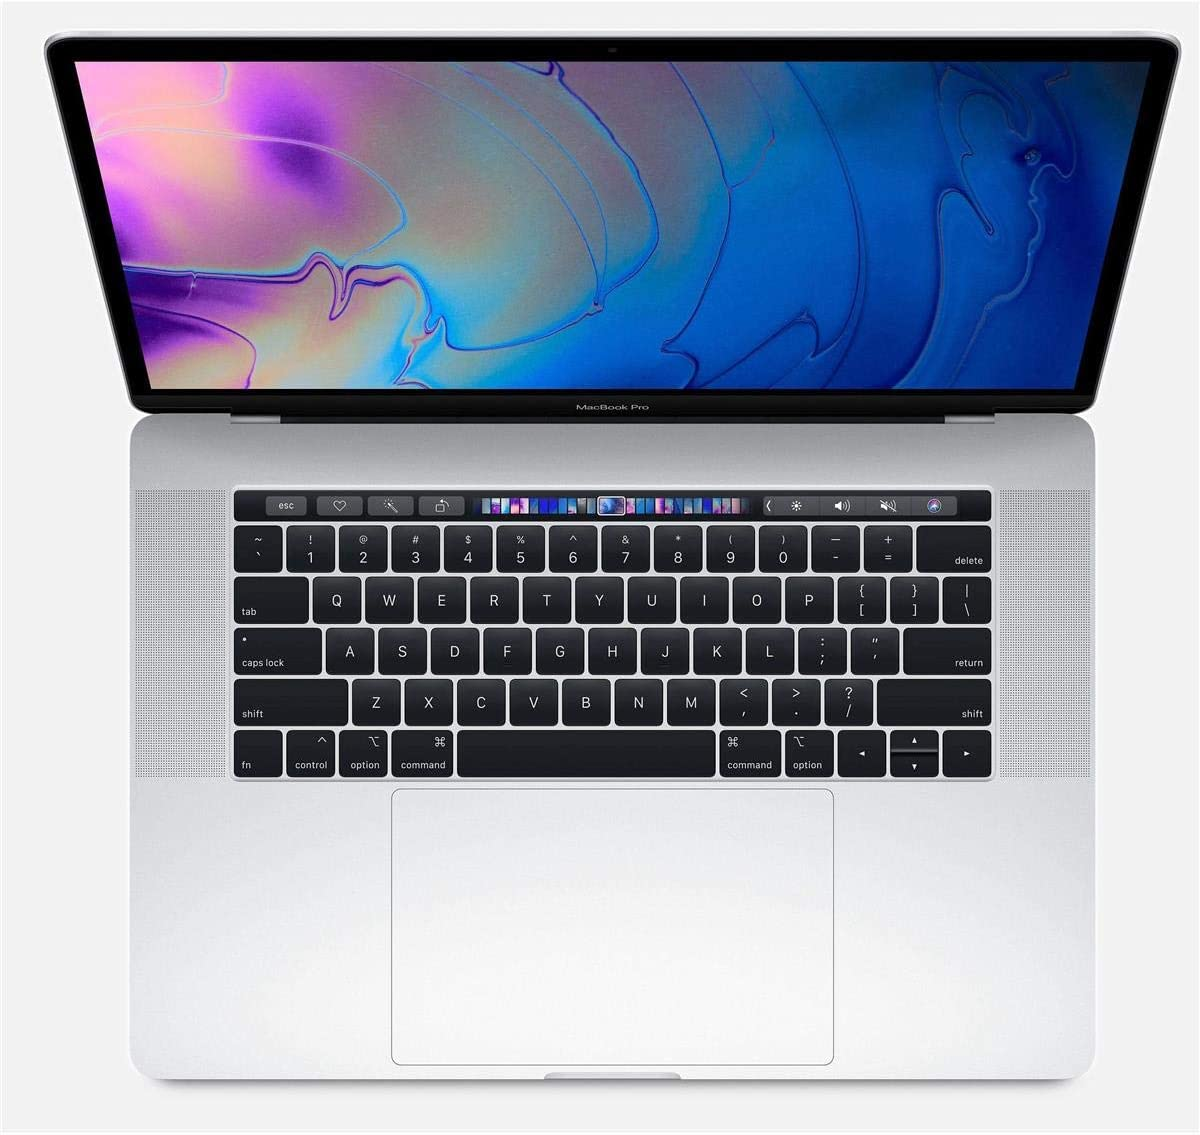 "Apple 15.4"" MacBook Pro with Touch Bar, 2.6GHz 6-Core Intel Core i7, 16GB RAM, 1TB SSD, Radeon Pro 560X, Space Gray (Mid 2018)"